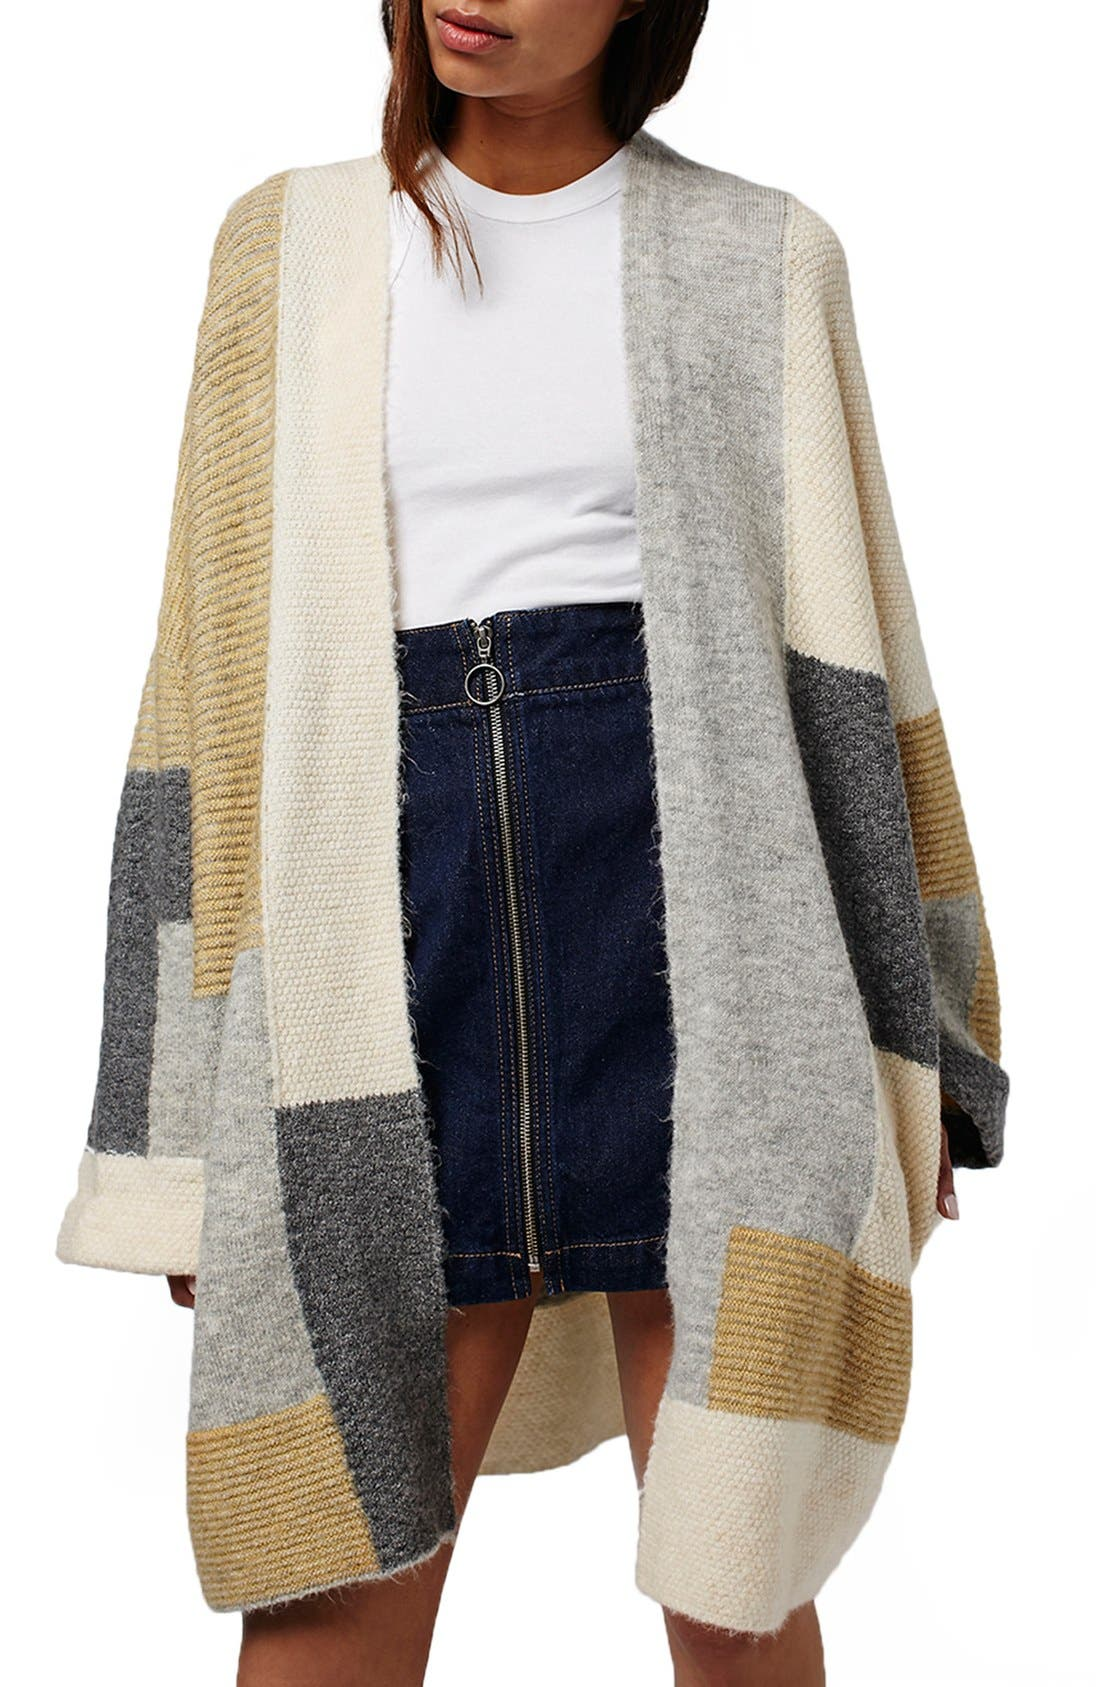 Alternate Image 1 Selected - Topshop Patchwork Oversize Open Cardigan